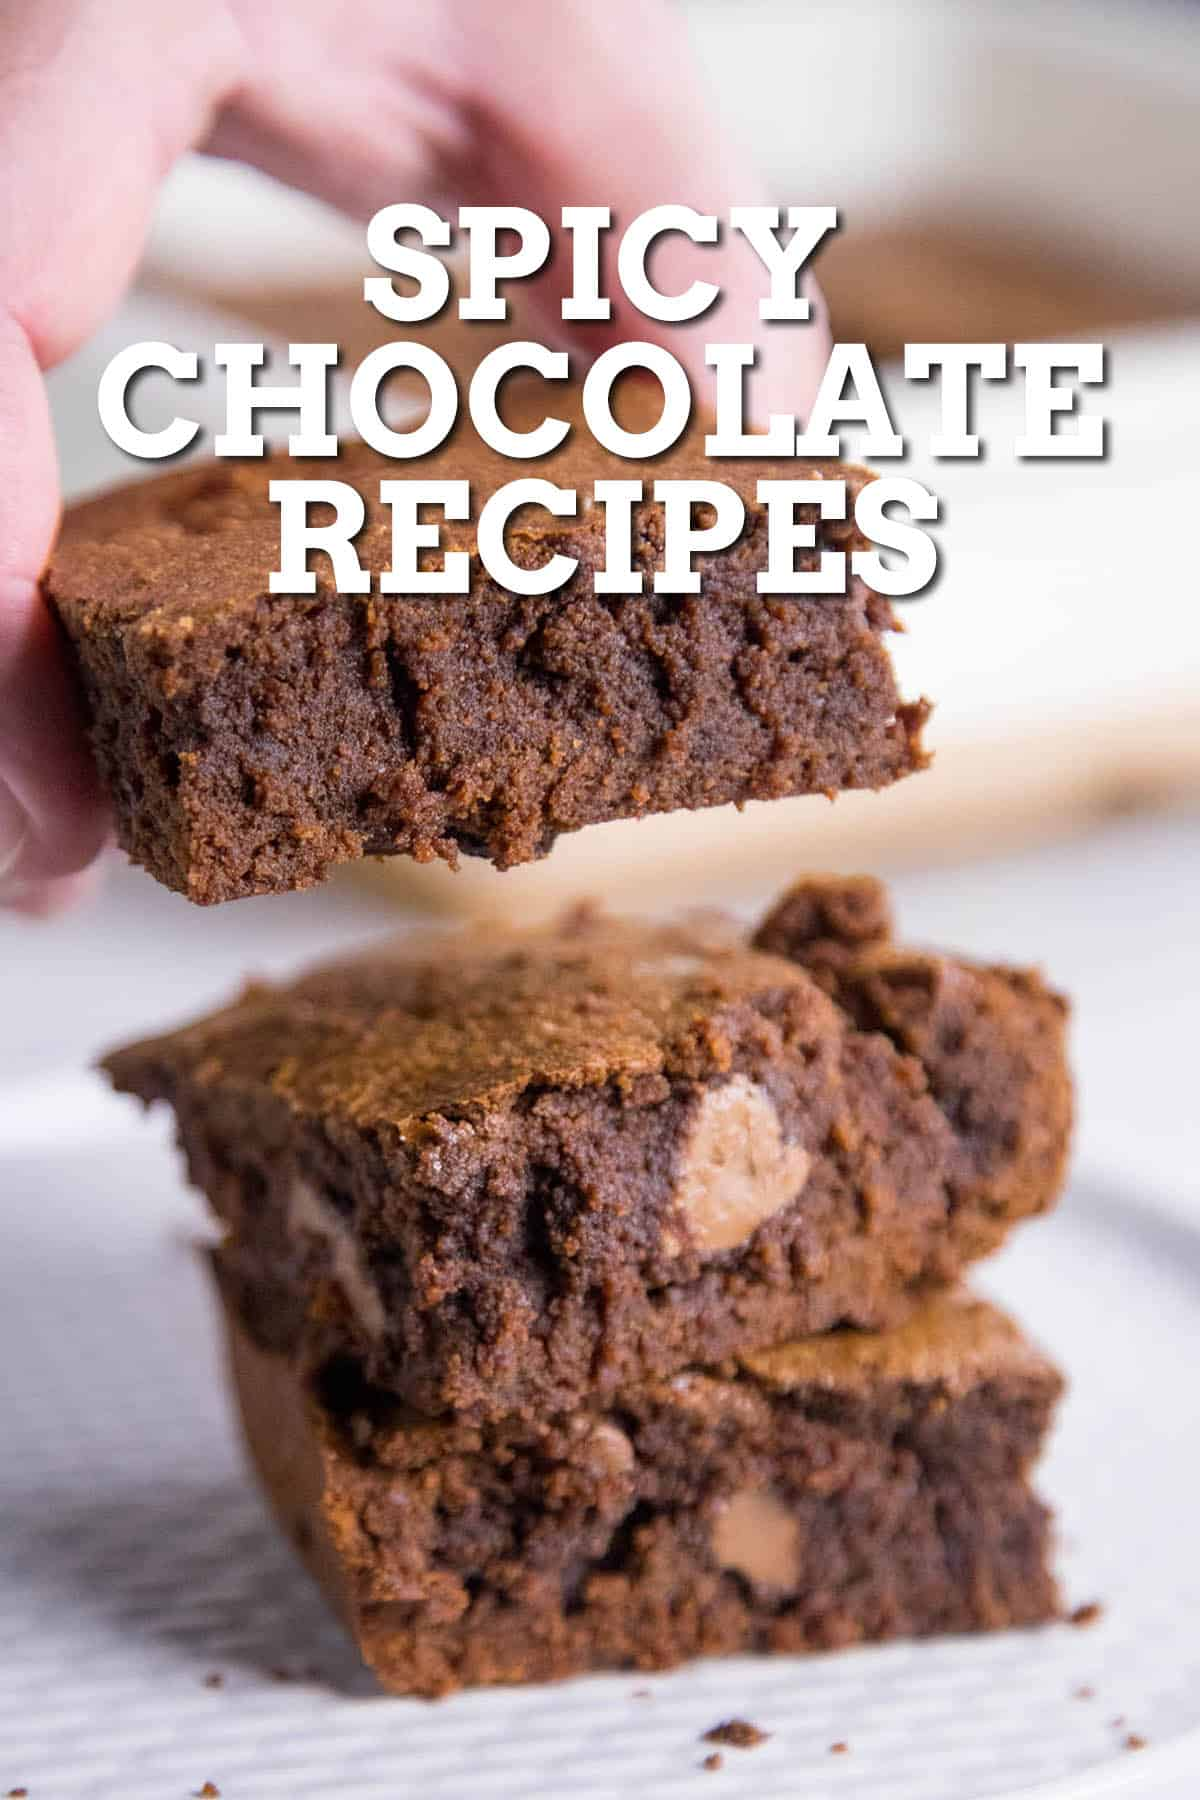 Spicy Chocolate Recipes